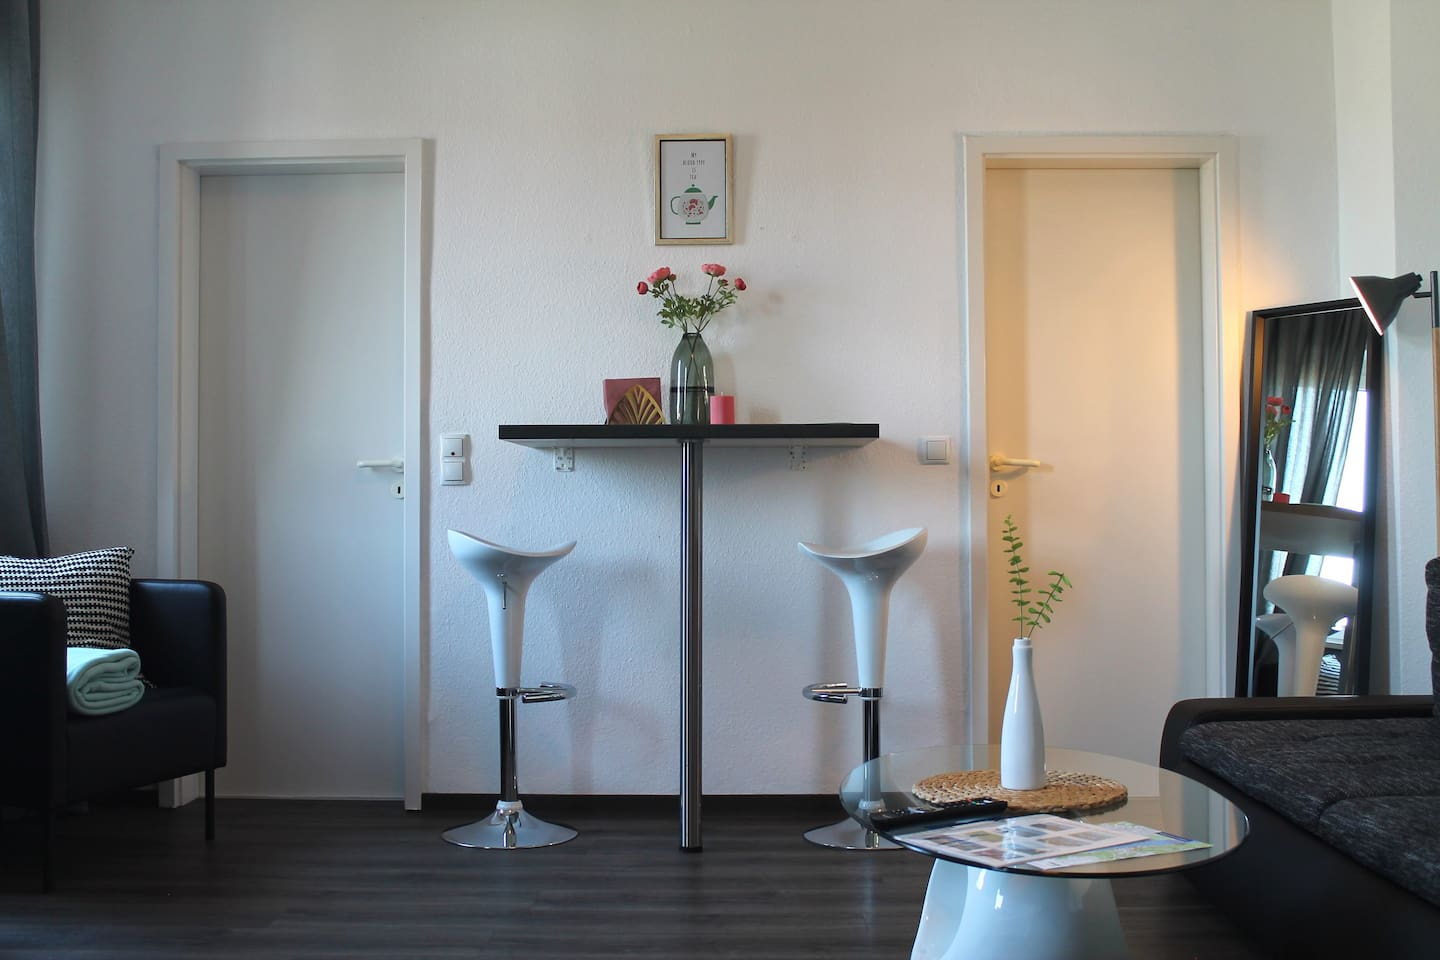 central, clean& cozy! 5 min walk to mall & main st